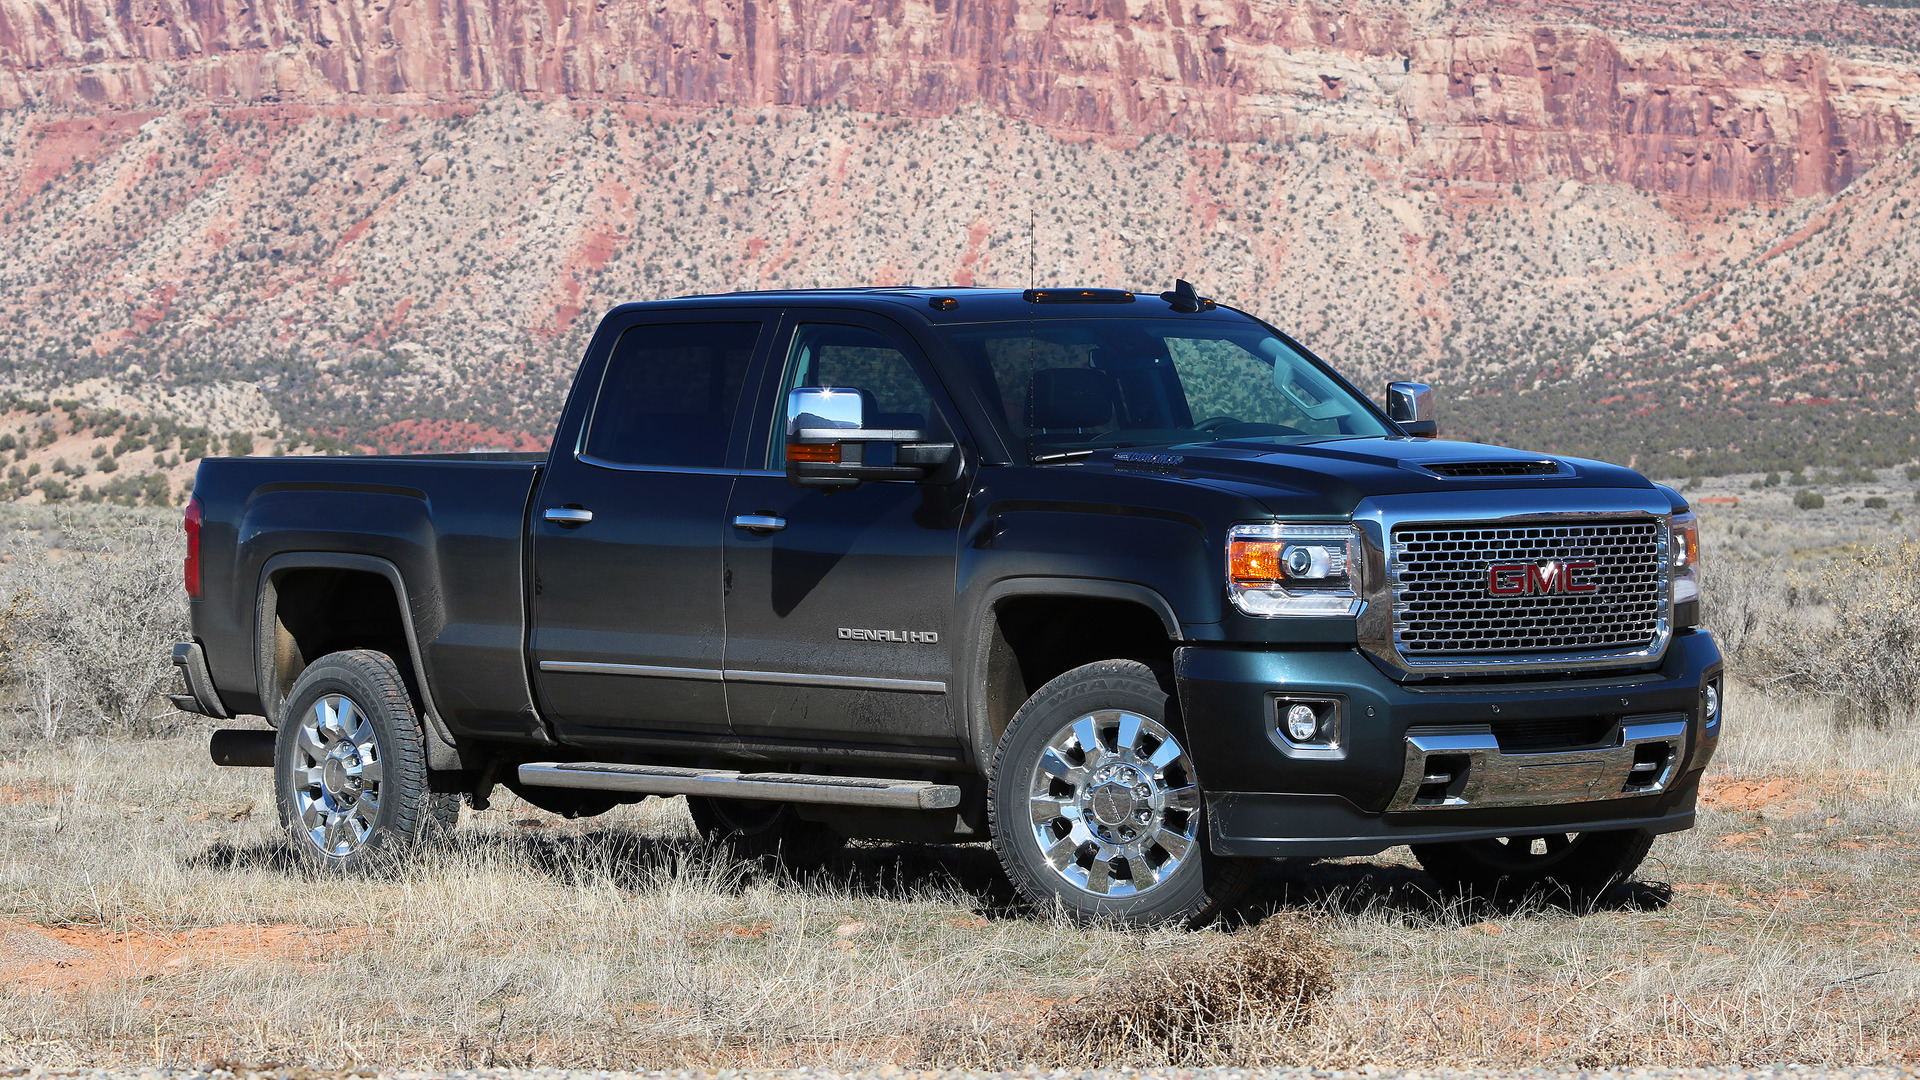 2017 Gmc Sierra 2500 Denali Hd First Drive Power Power Power